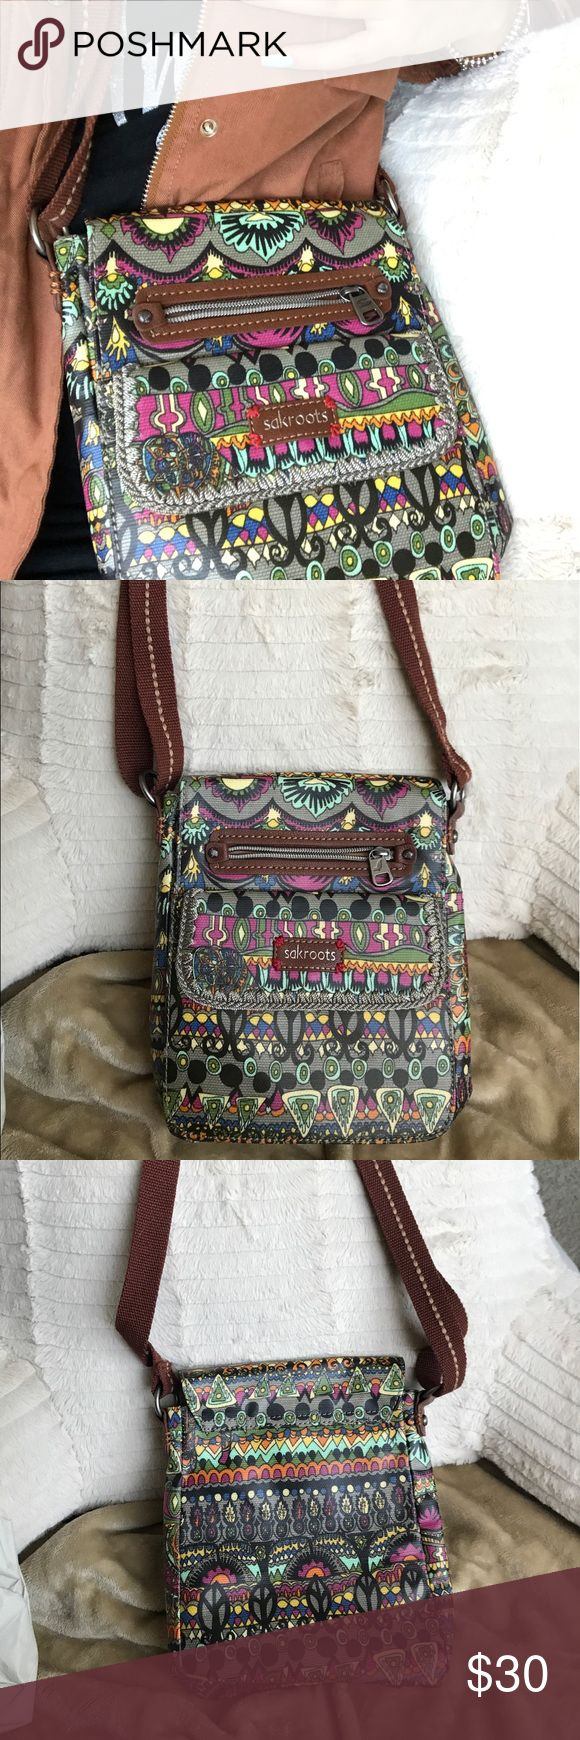 Sakroots Crossbody bag 💓 Super cute and practical cross body bag. Fun pattern for spring and great for festivals! 5 roomy pockets/compartments and built in credit card/ ID holder. Never been used before!  Bought originally from Nordstrom Bags Crossbody Bags